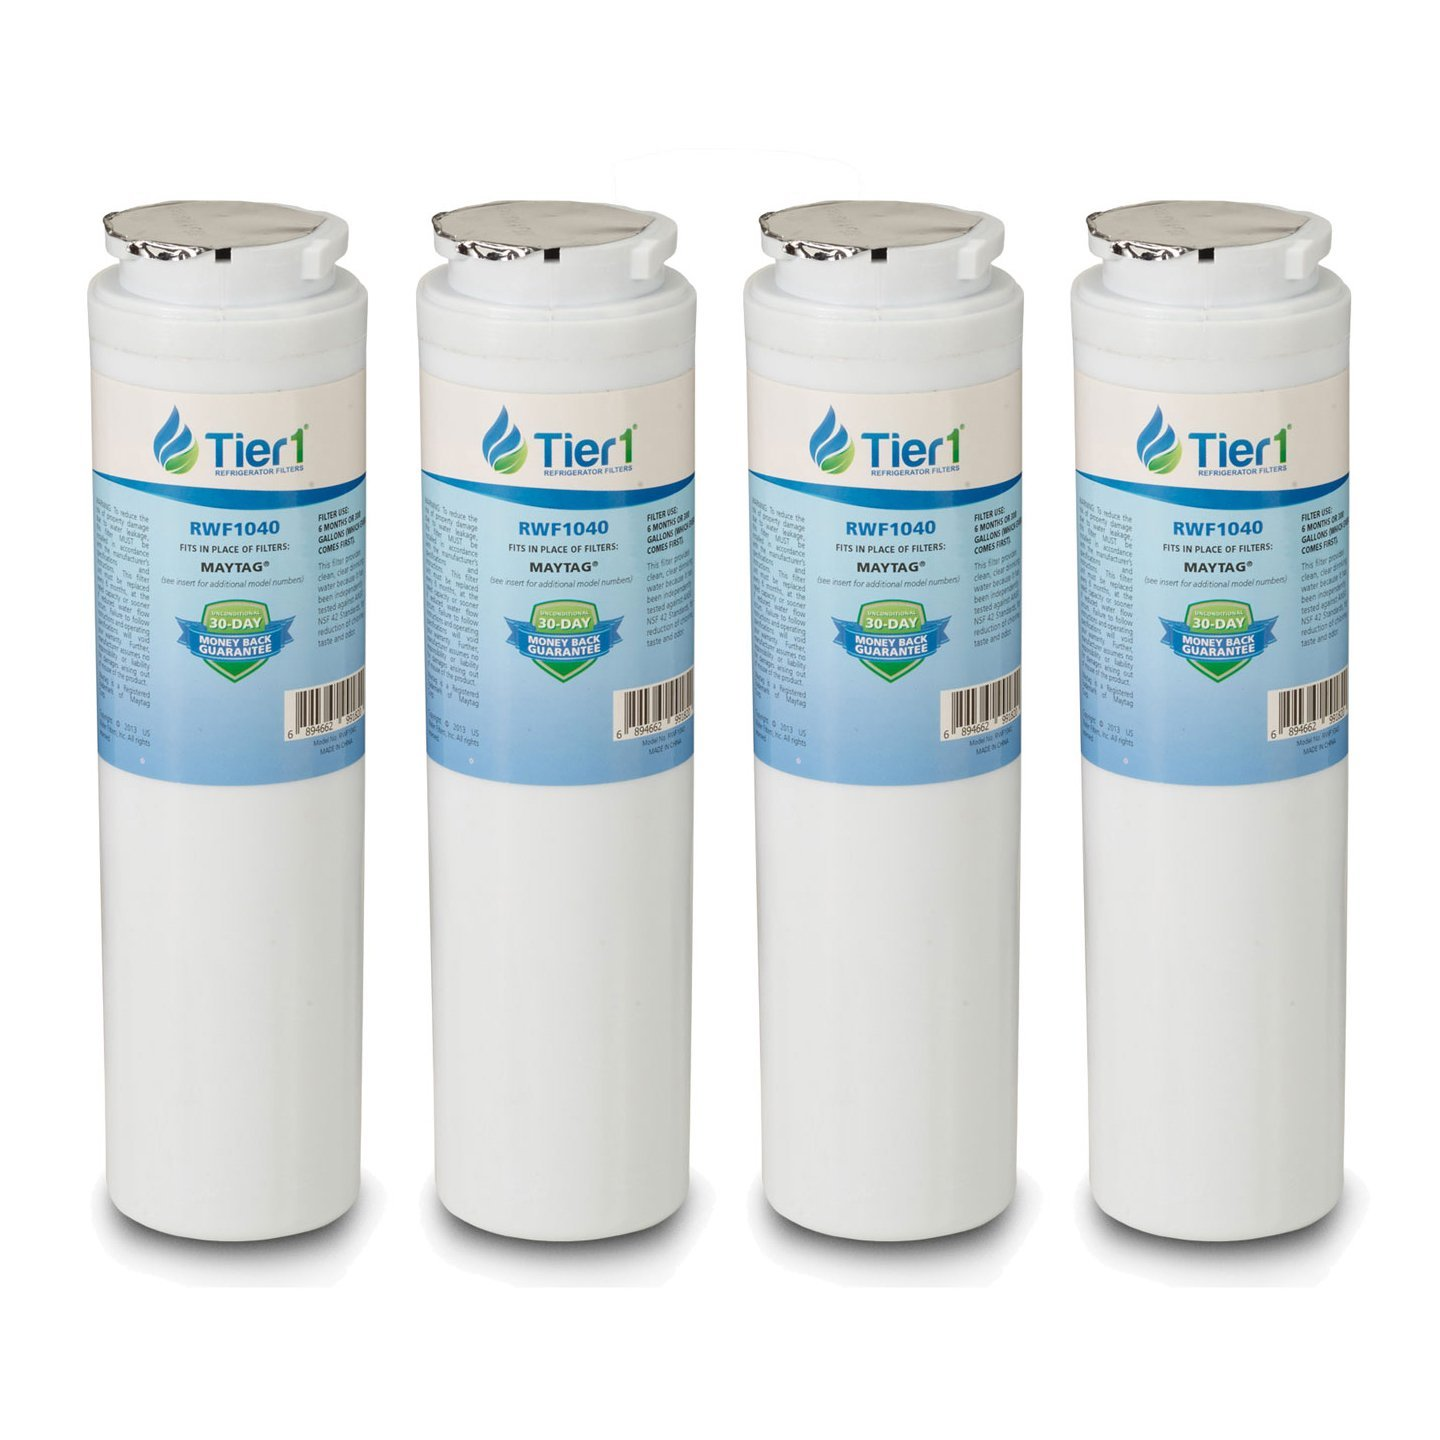 Tier1 Replacement Maytag UKF8001, EDR4RXD1, Whirlpool 4396395, PUR, Jenn-Air, Puriclean II, 469006, 469005 Refrigerator Water Filter 4 Pack